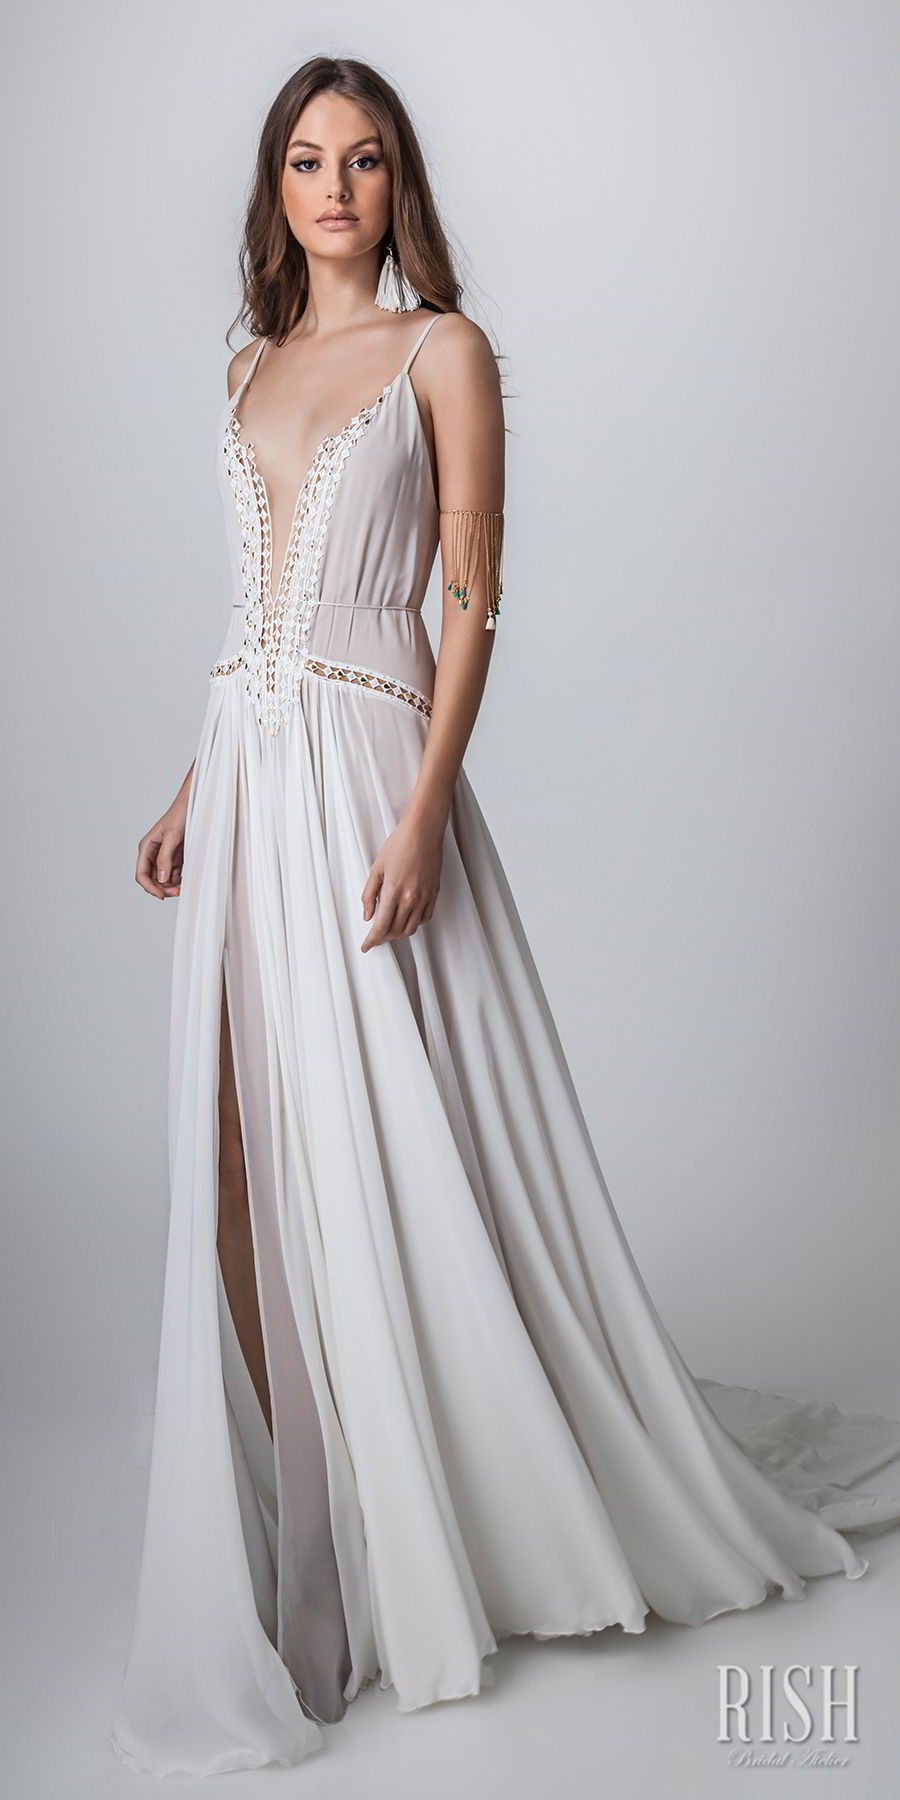 rish bridal sun dance 2018 sleeveless spaghetti strap deep plunging v neck lightly embellished bodice sexy bohemian soft a  line wedding dress open v back chapel train (helena) mv